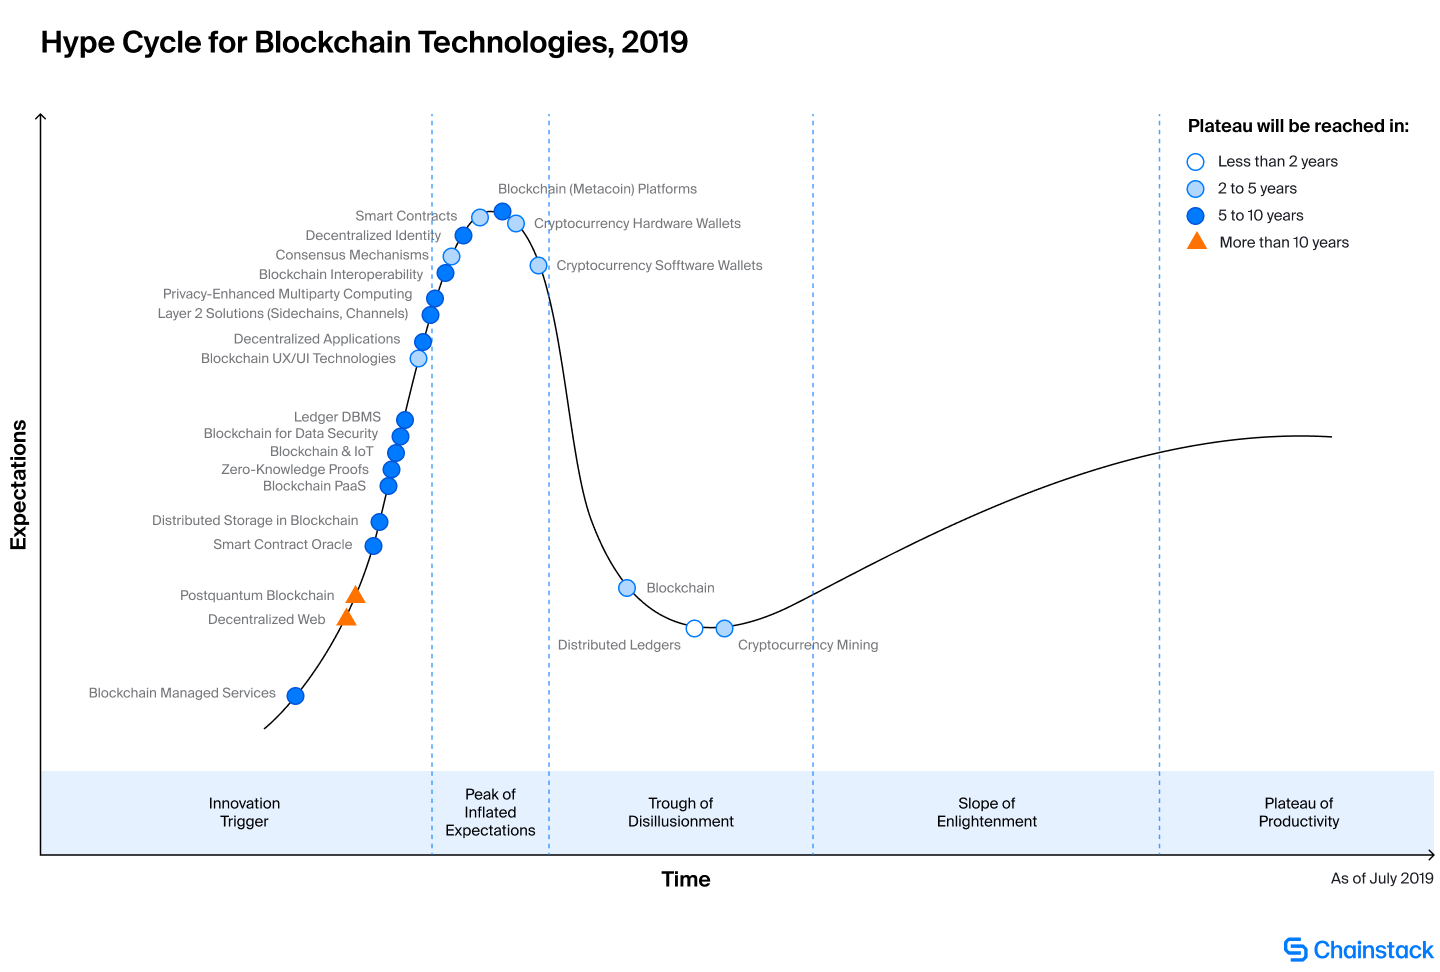 Gartner Hype Cycle for Blockchain Technologies 2019